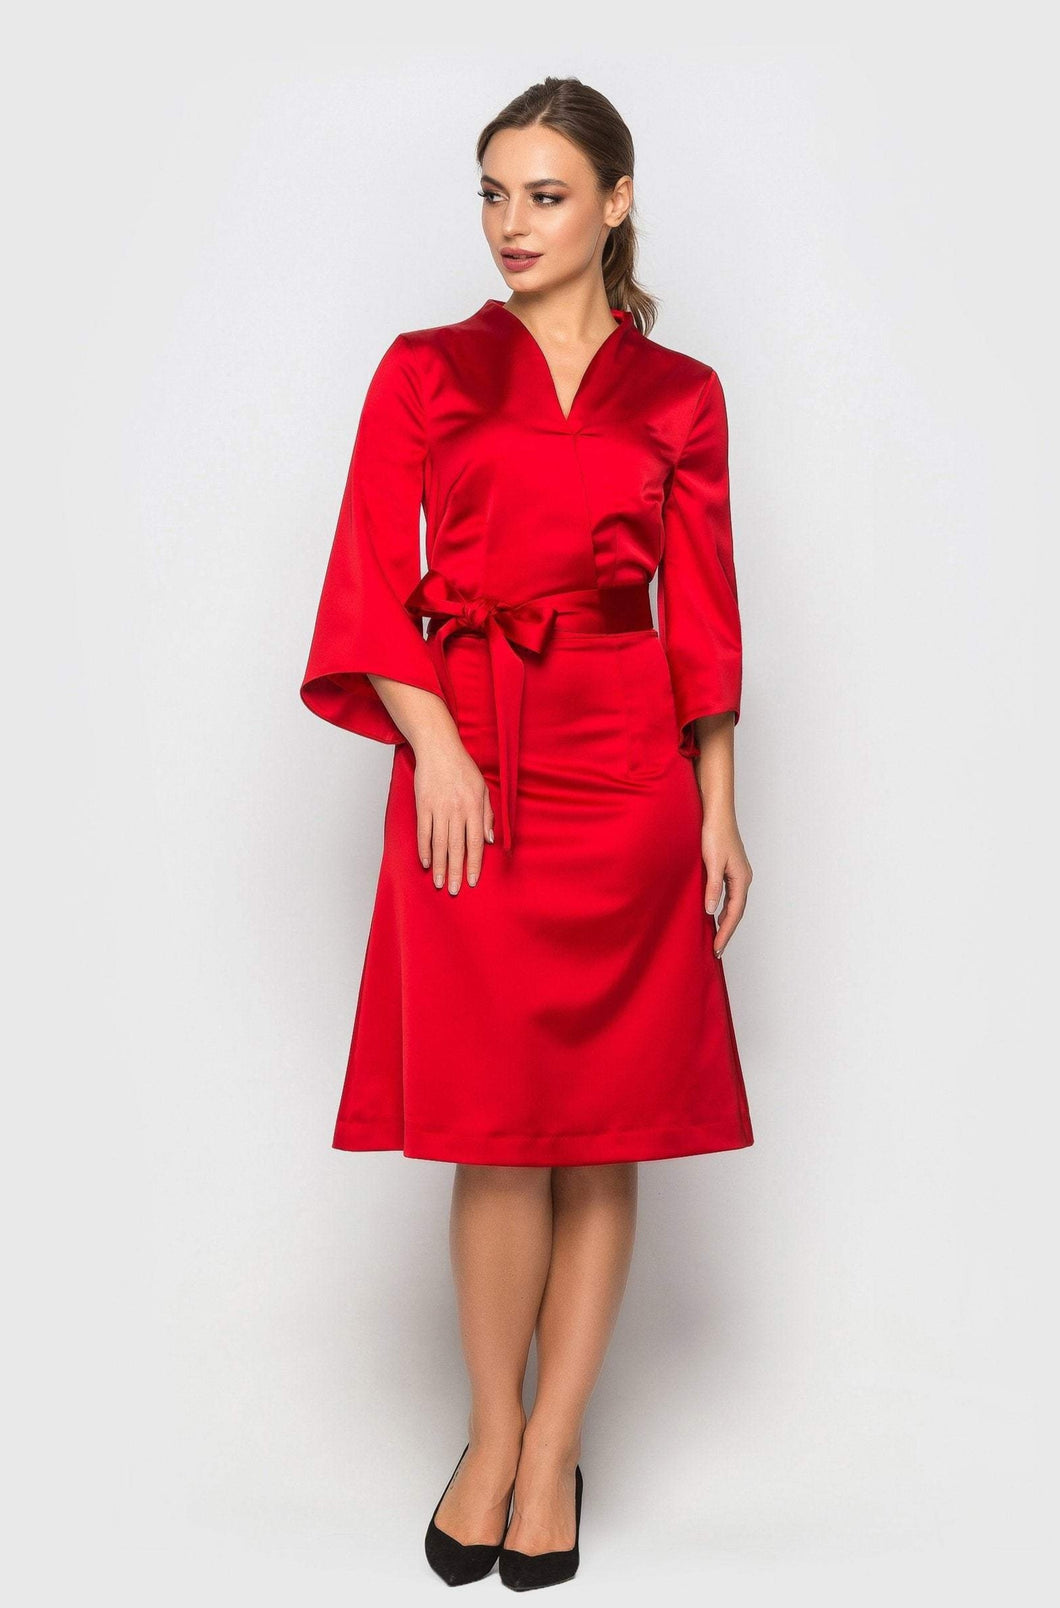 Red satin high neck kimono dress women